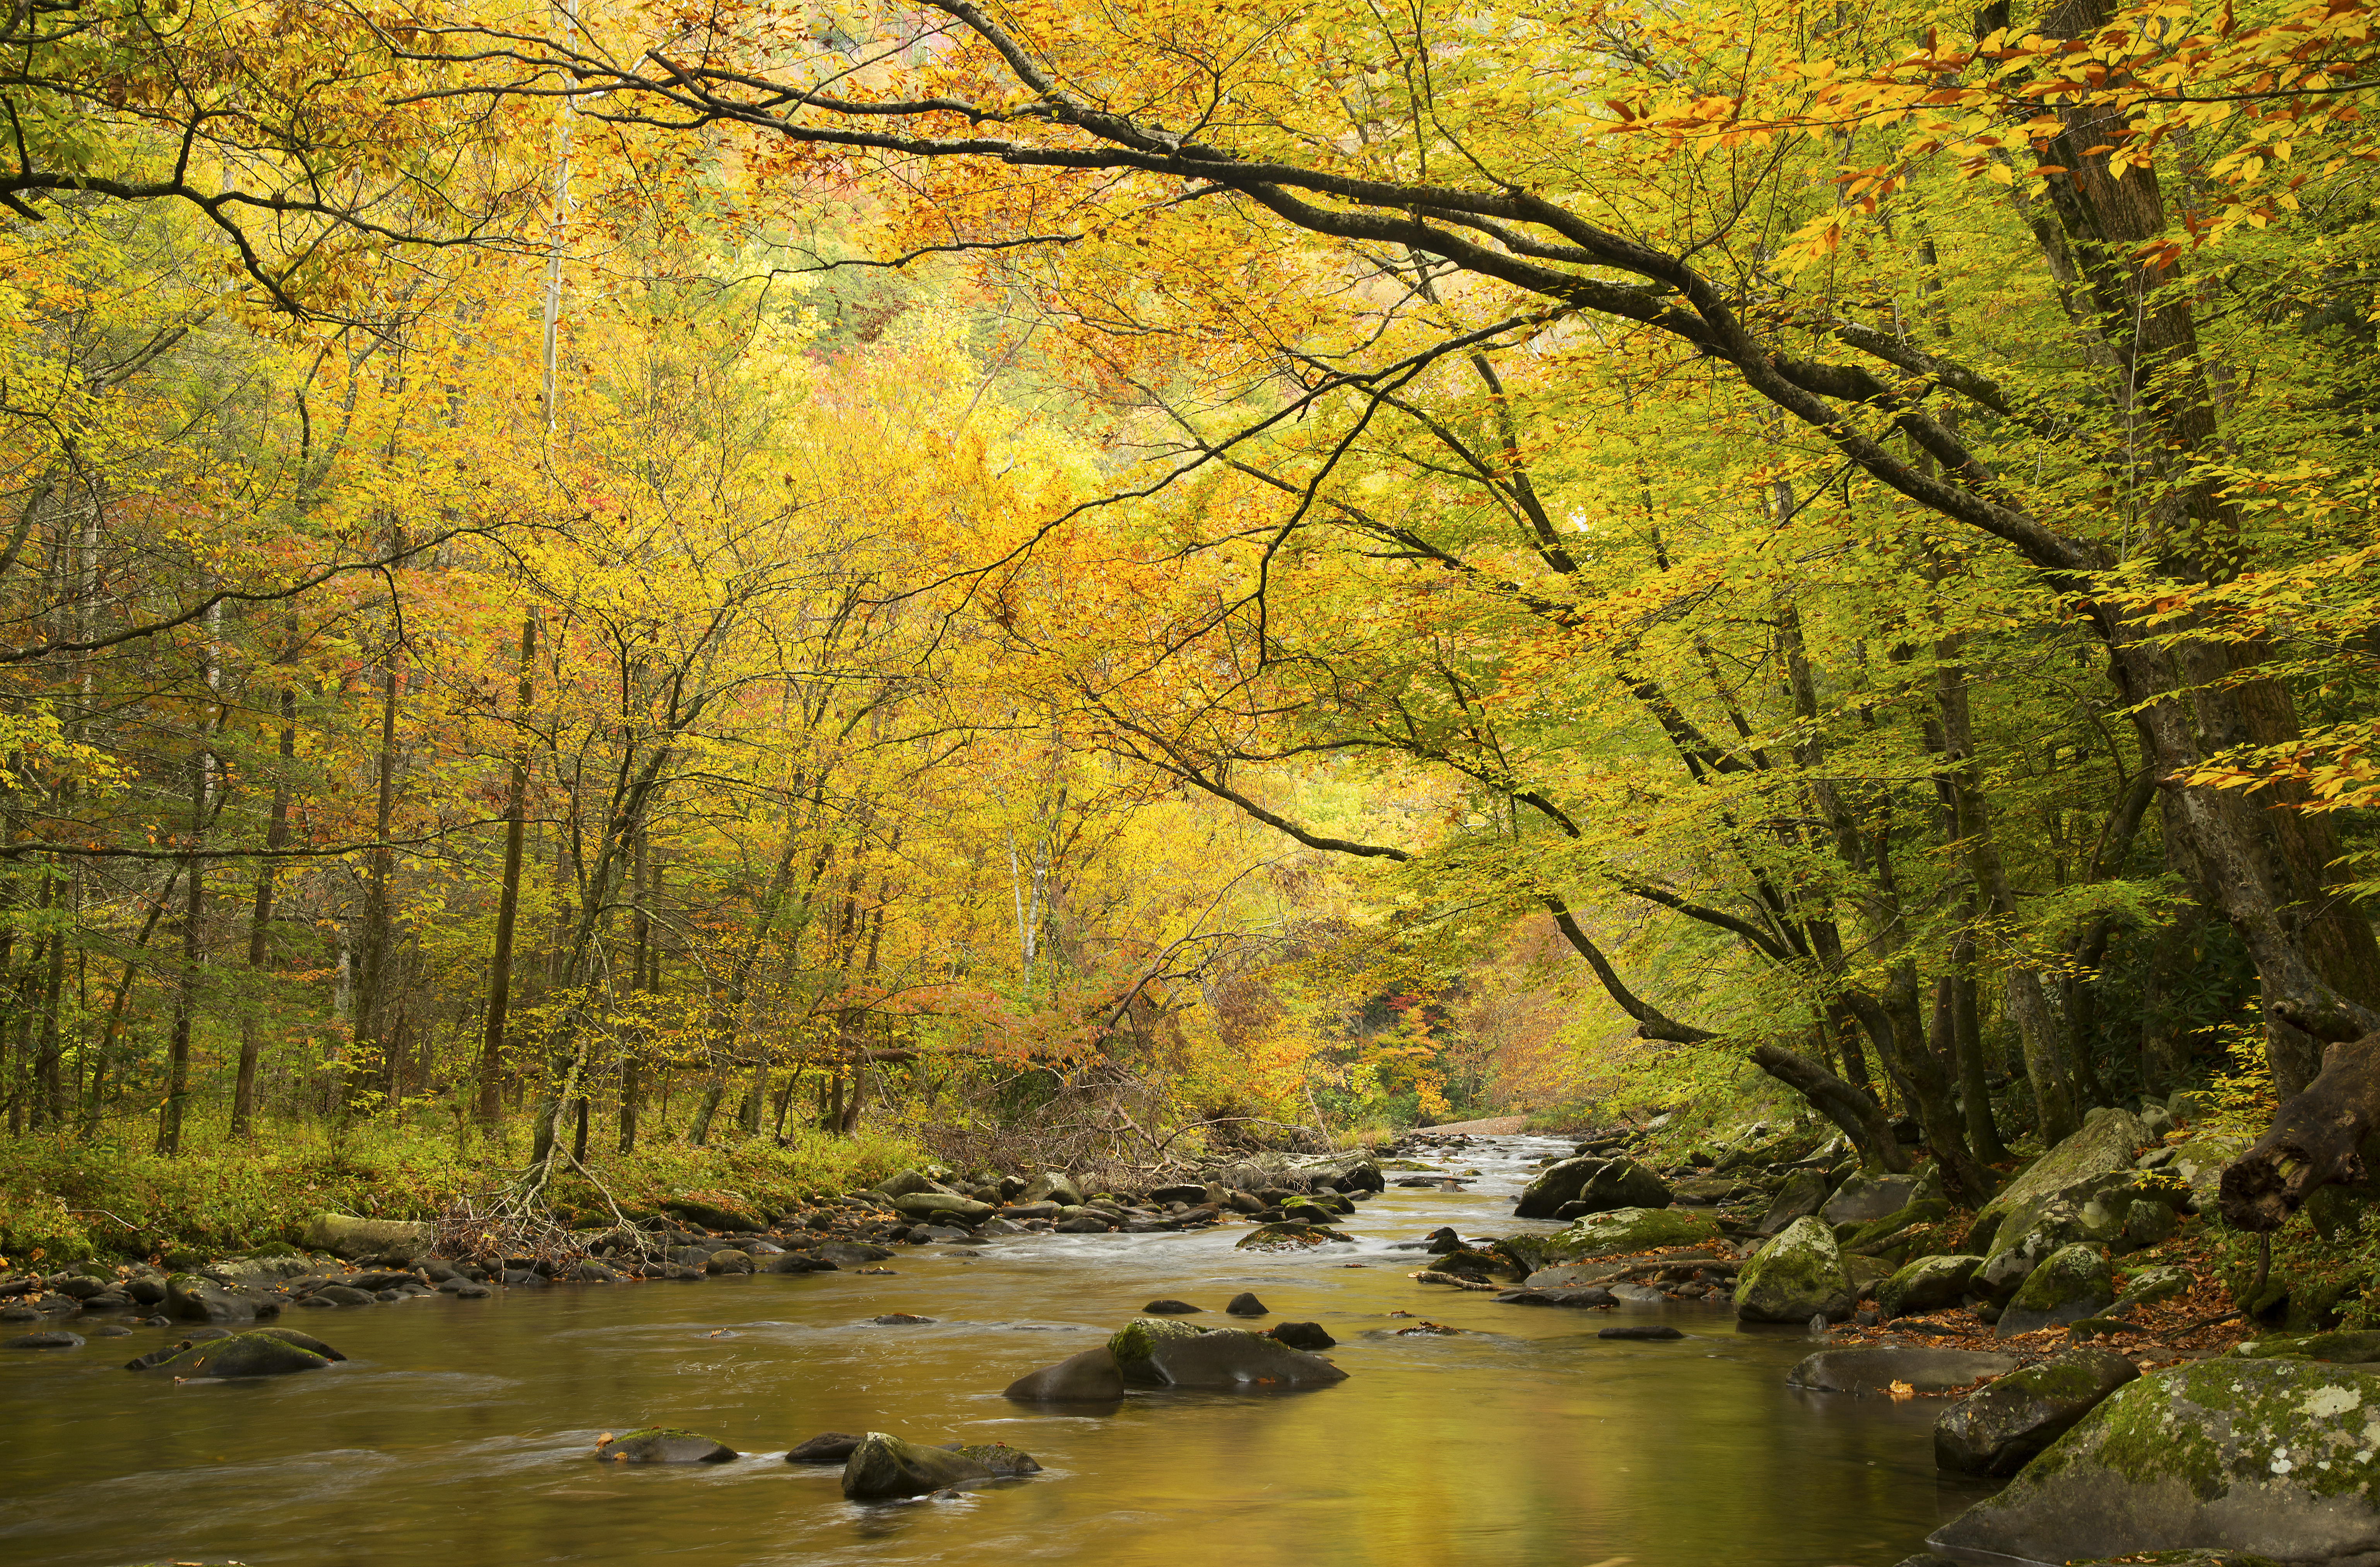 Golden colored fall leaves and still waters in the Smoky Mountains of Tennessee